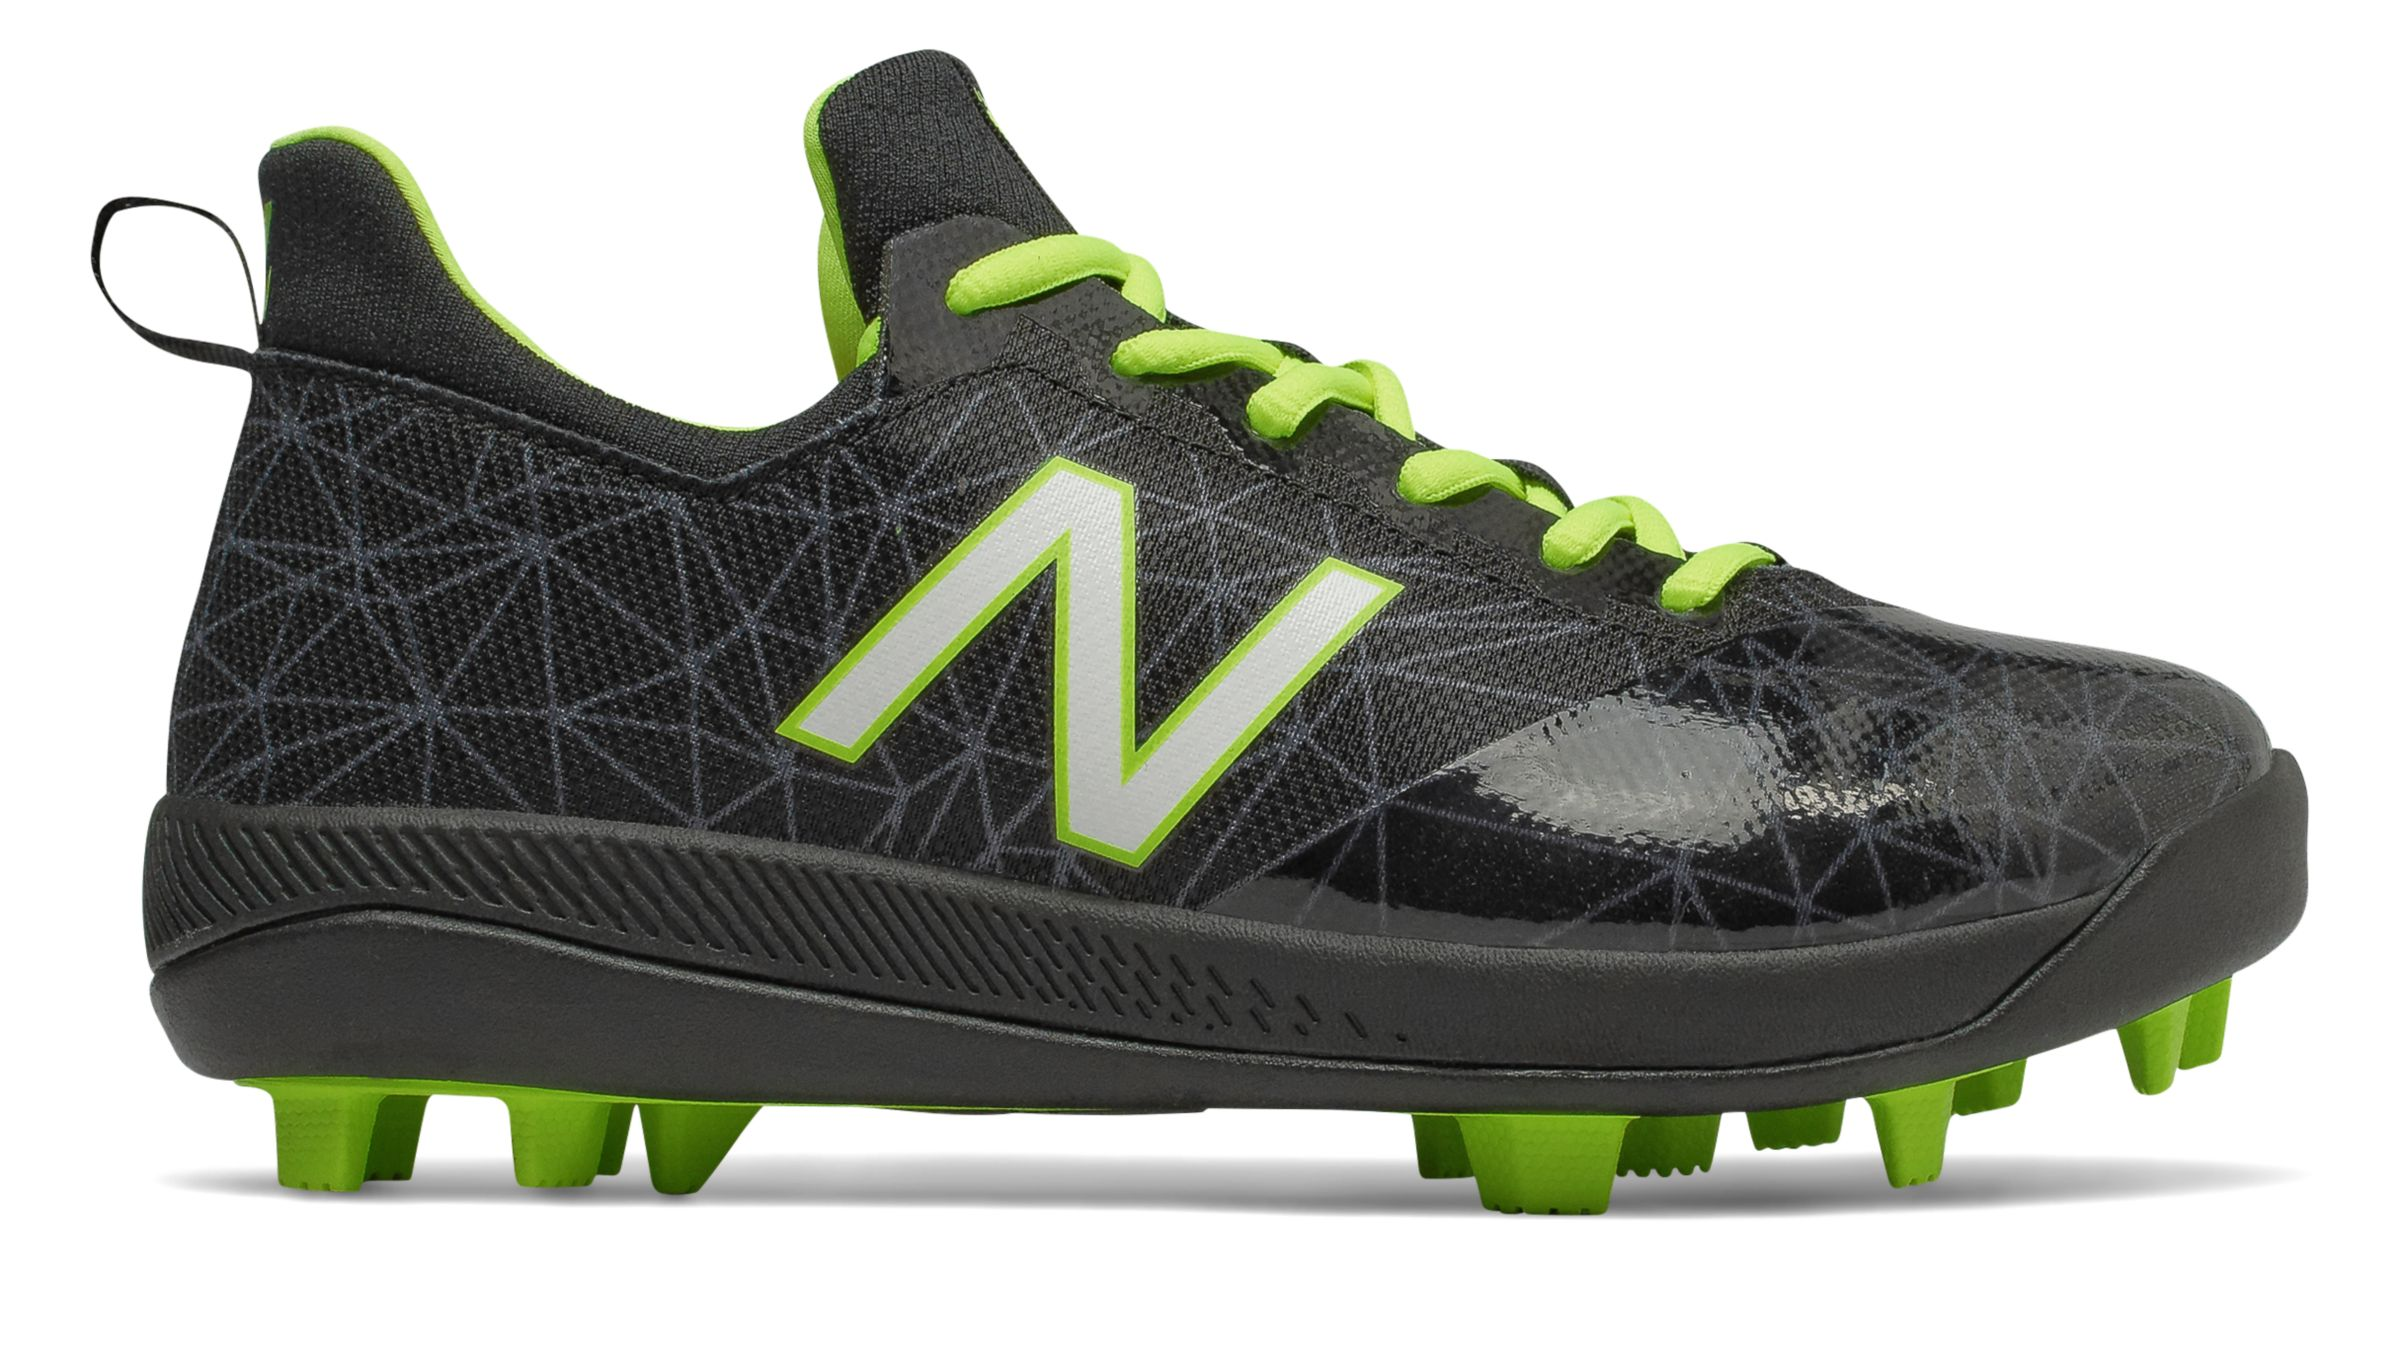 New Balance Kid's Low-Cut Lindor Pro Youth Baseball Cleat Big Kids Unisex Shoes Black with Green photo